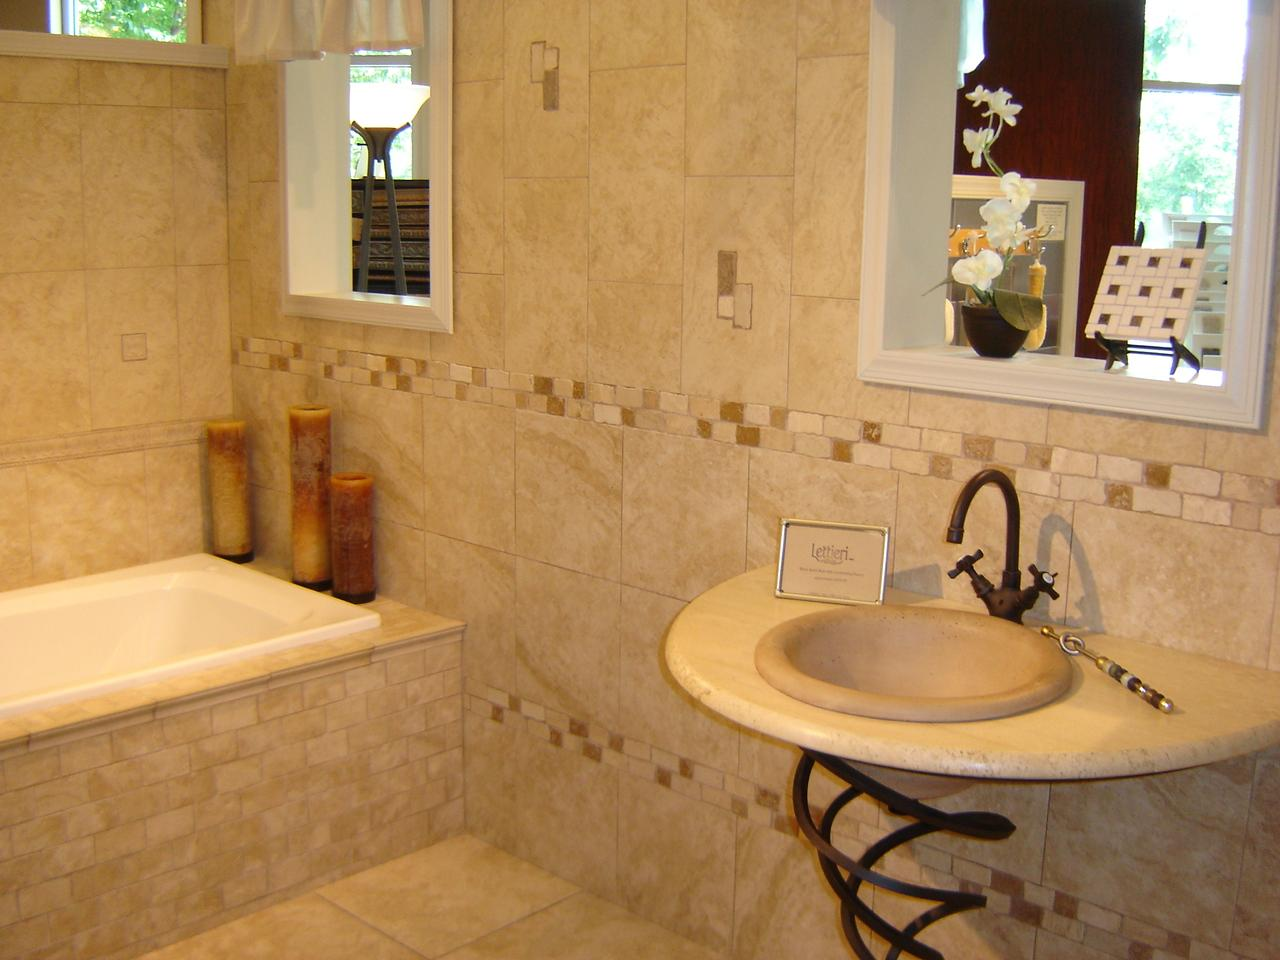 Bathroom tile design ideas for Tiles bathroom design